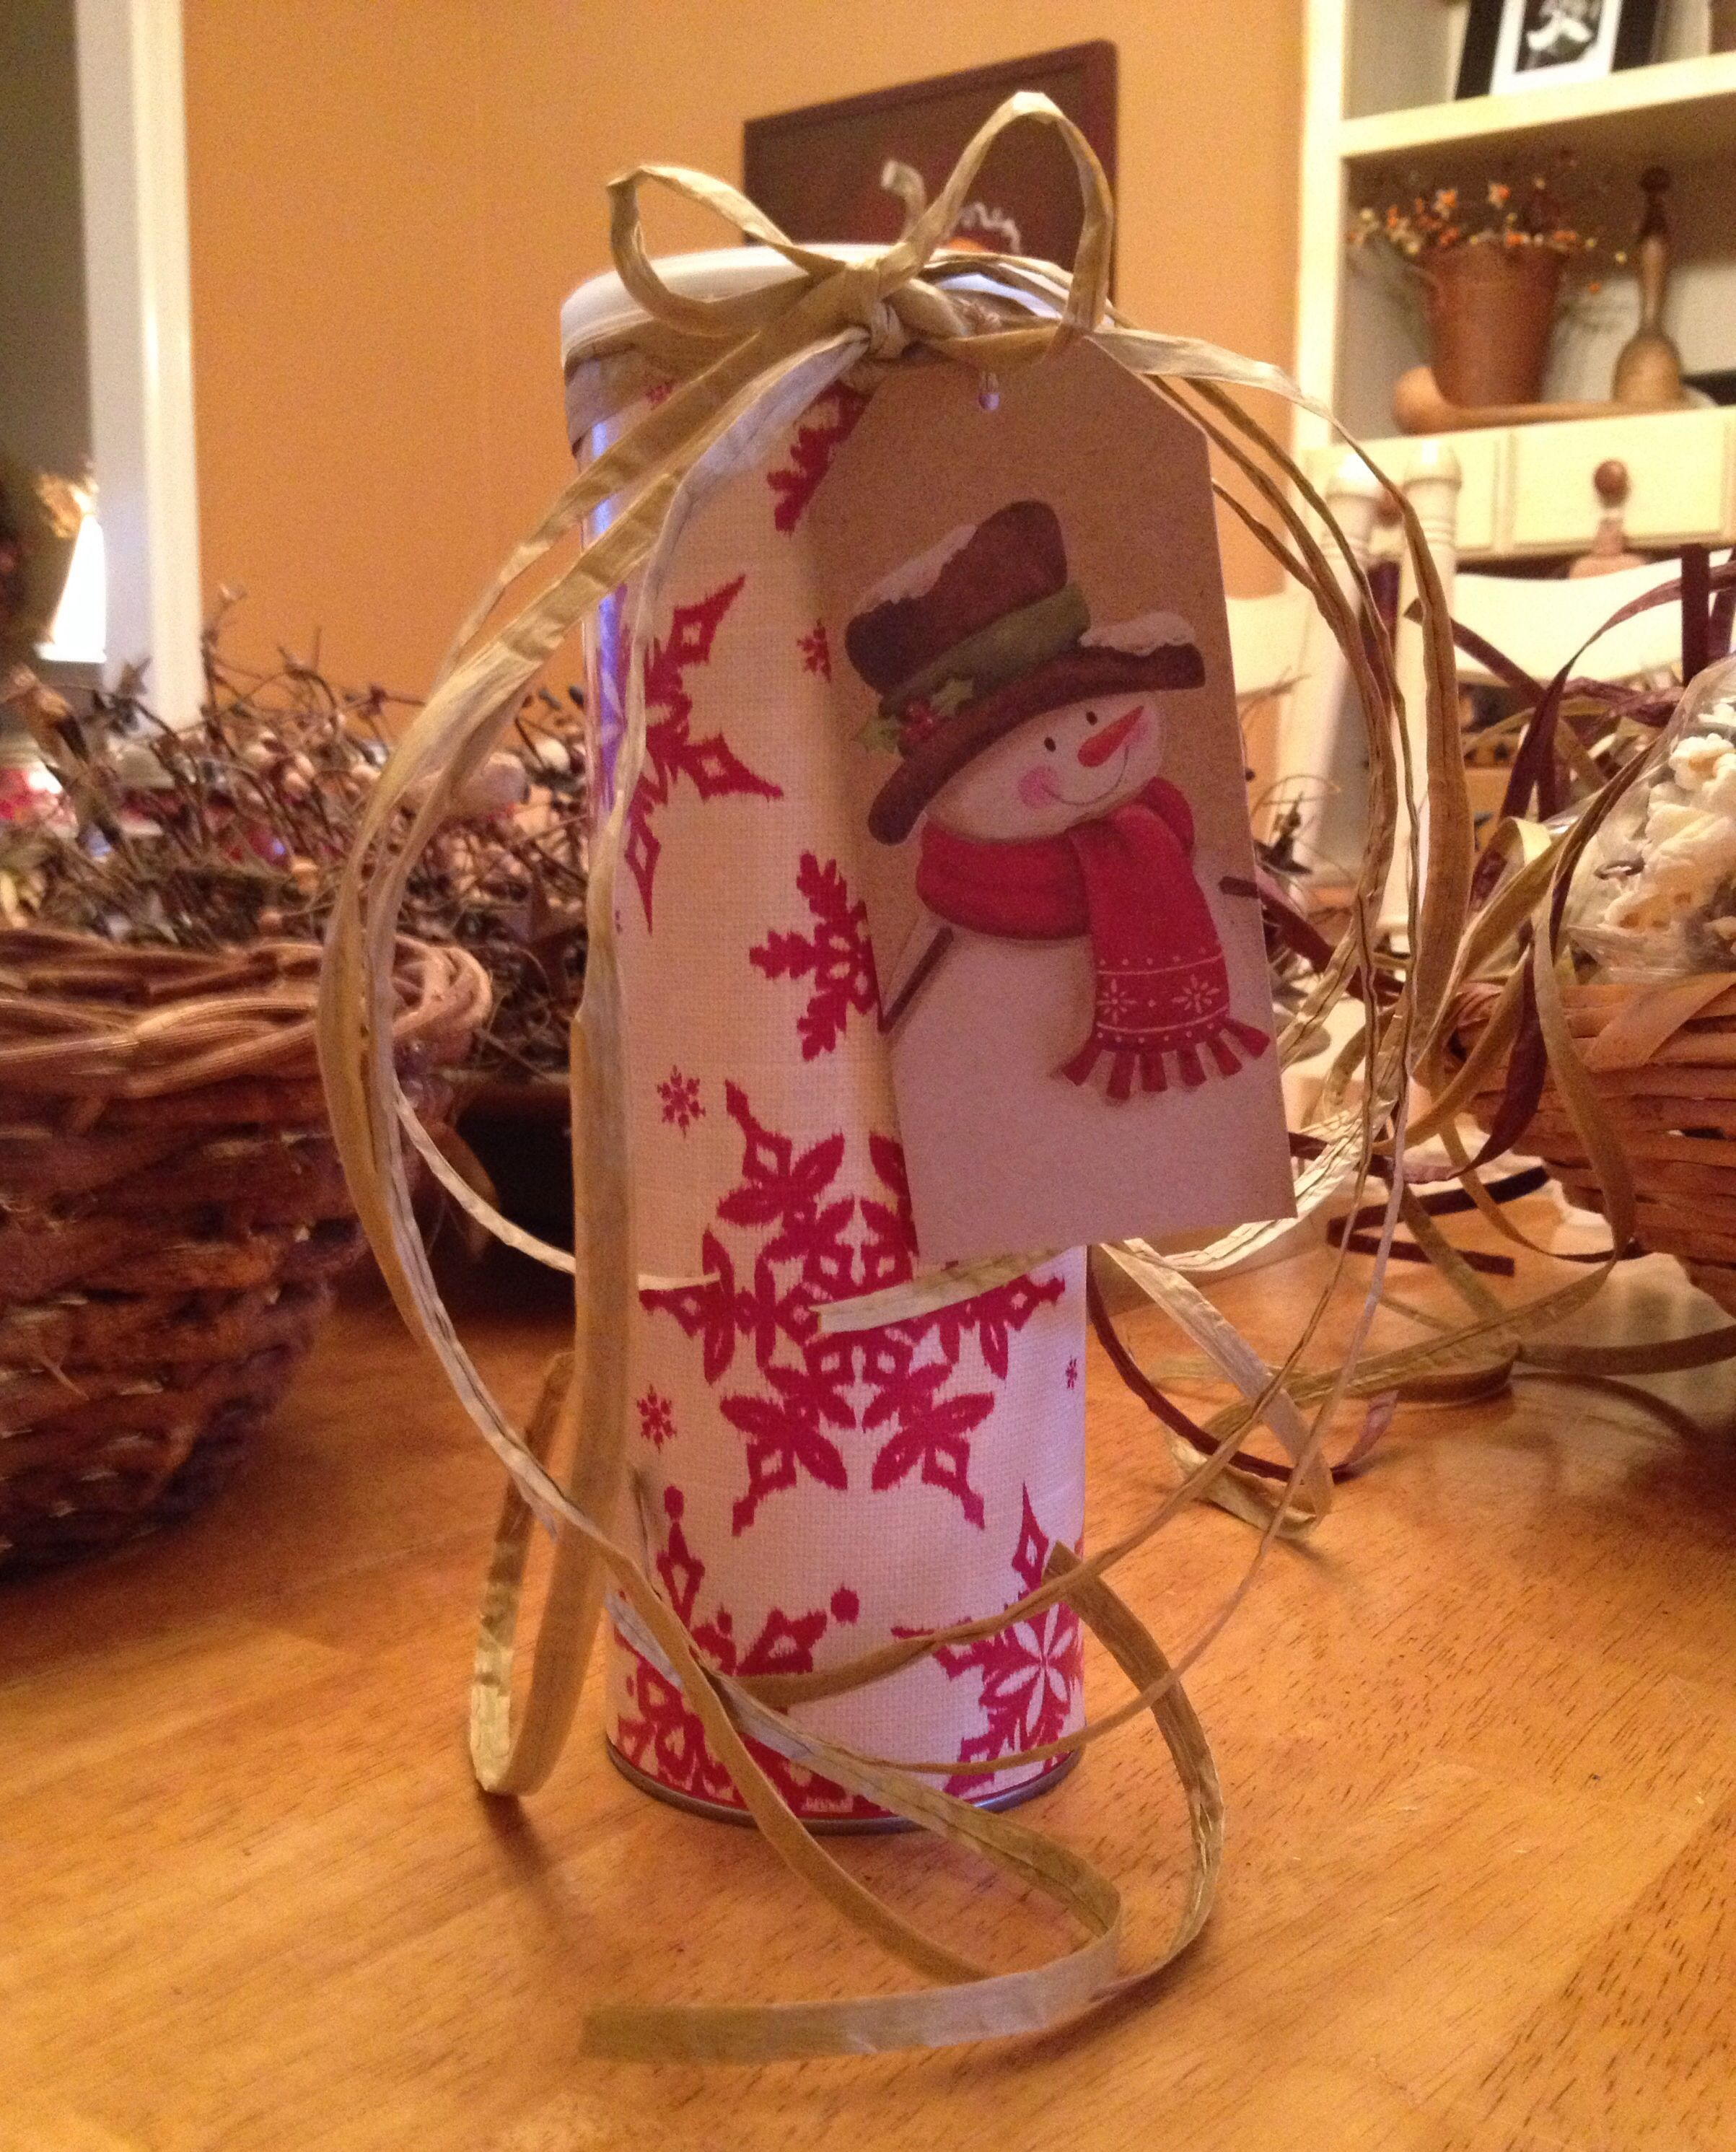 The coolest way to gift cookies ever! Pringles can wrapped in paper! Add raffia ribbon and a pretty tag!